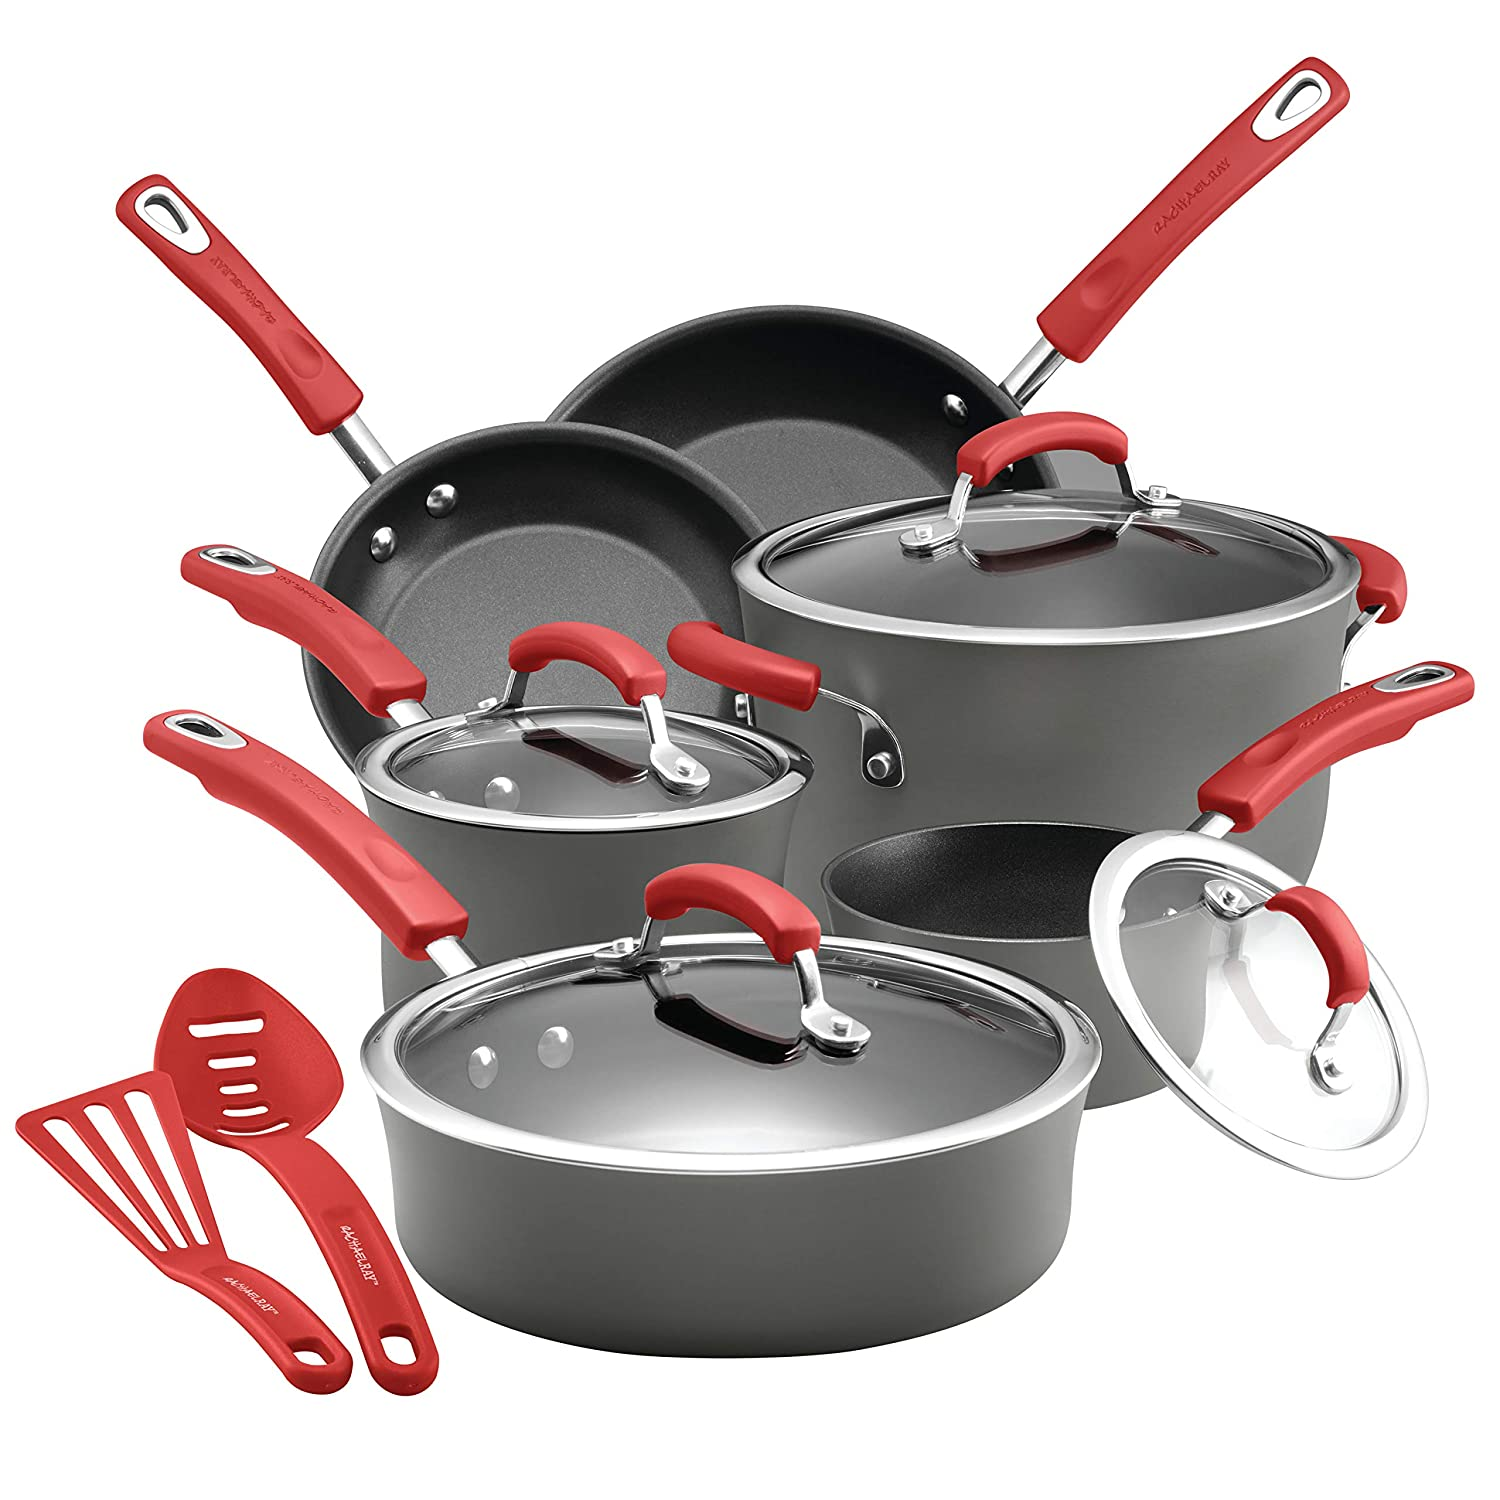 Rachael Ray 87661 14-Piece Hard Anodized Aluminum Cookware Set, Mixed Color